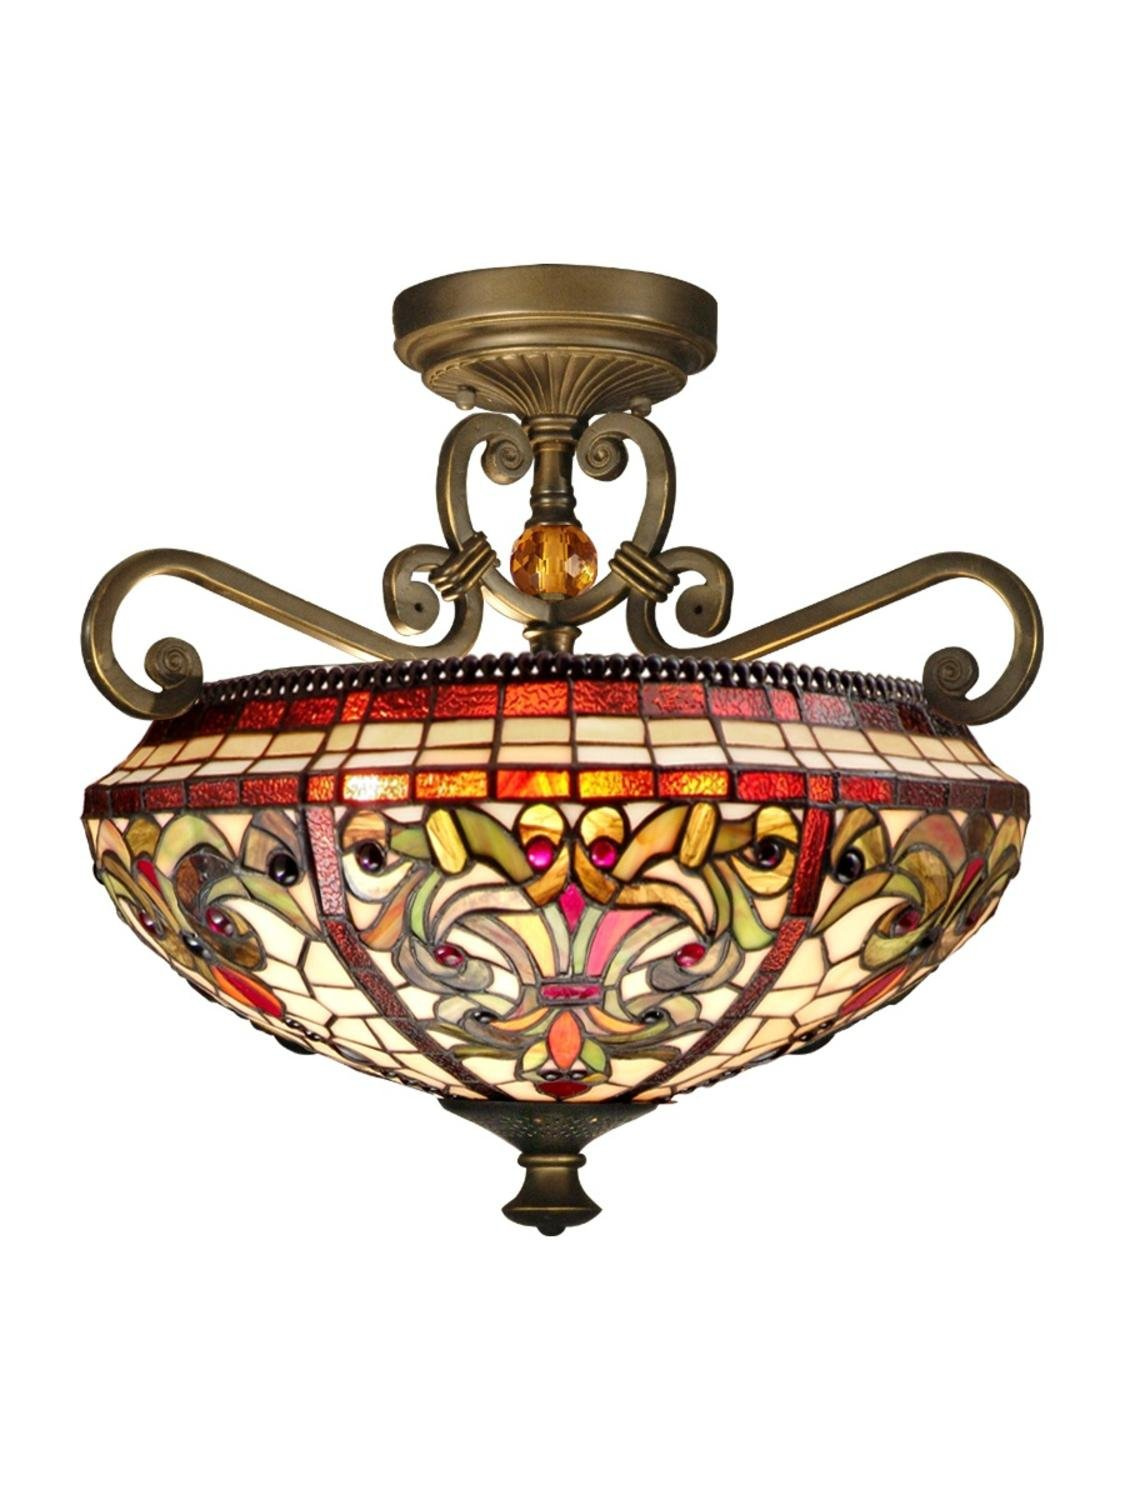 Dale tiffany th13090 baroque semi flush mount light fixture antique dale tiffany th13090 baroque semi flush mount light fixture antique golden sand close to ceiling light fixtures amazon arubaitofo Gallery